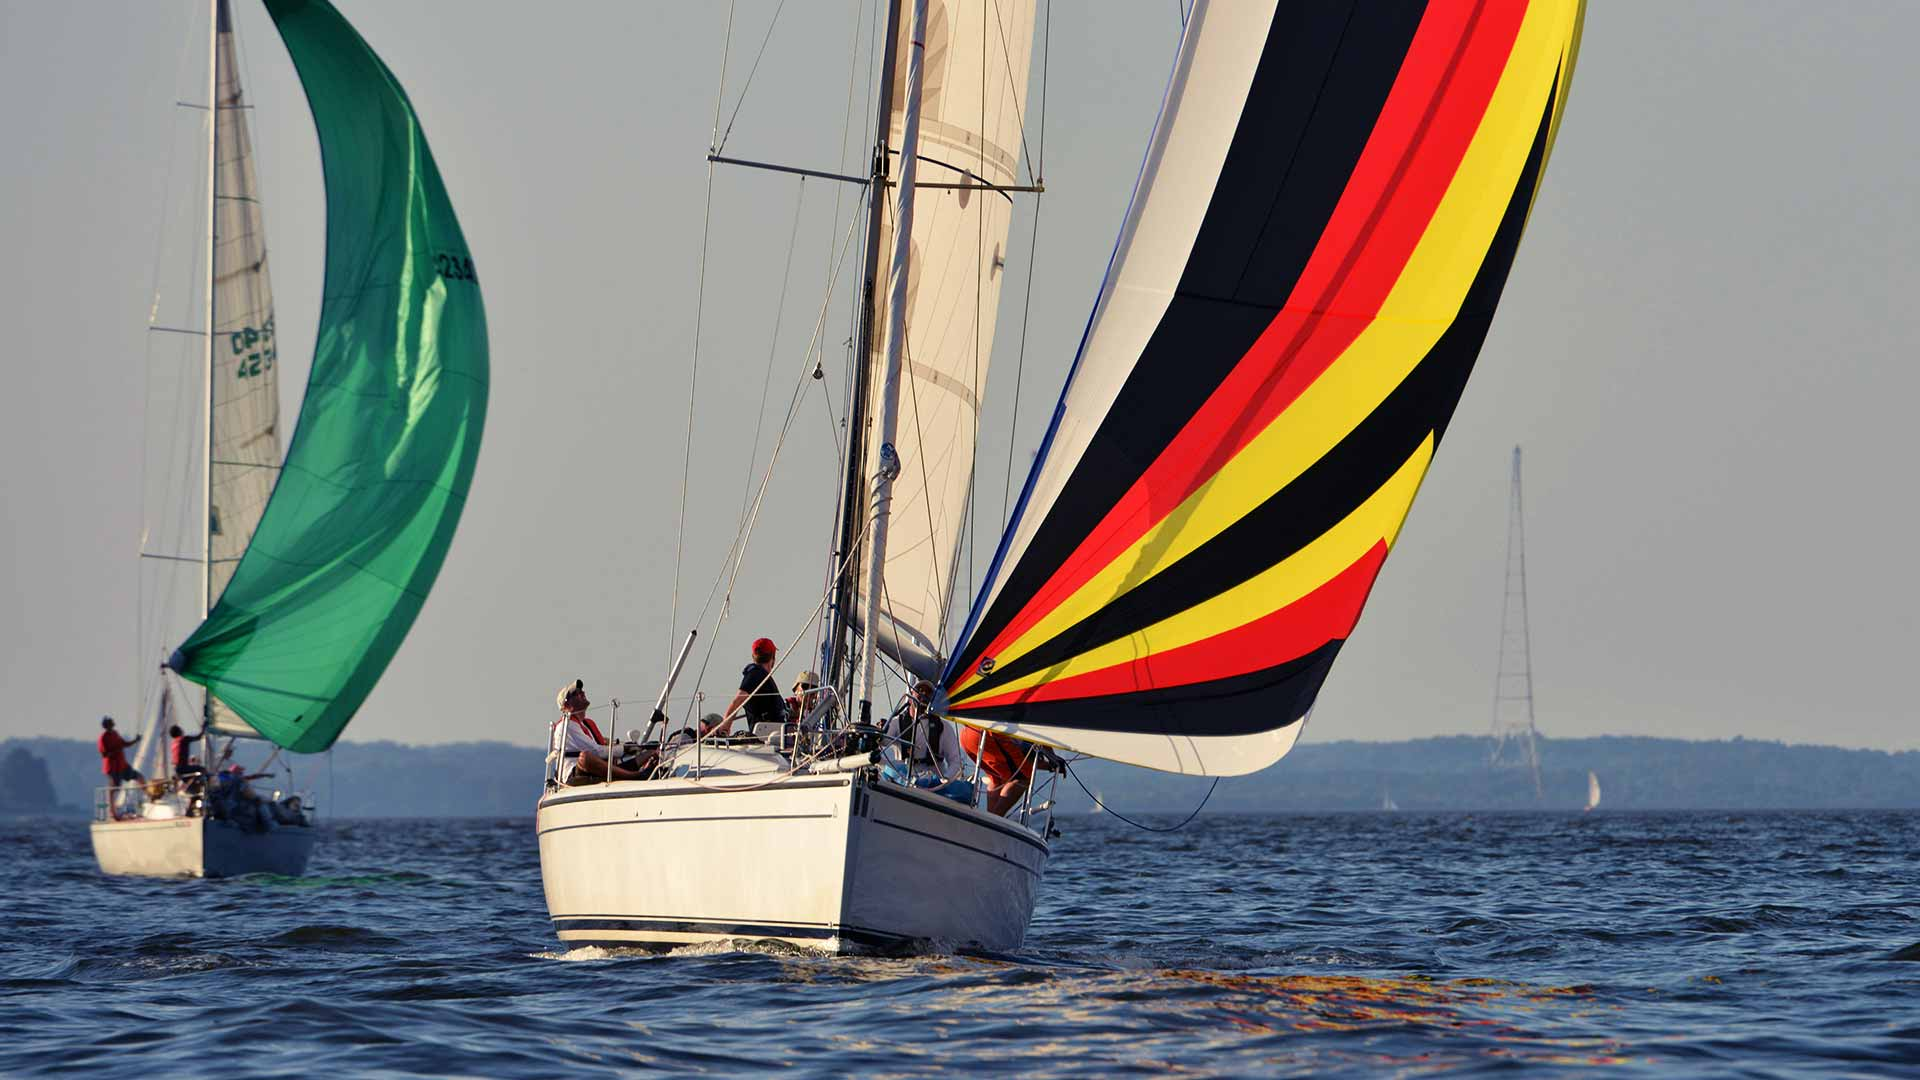 Archival Photo - 42nd Annual Governor's Cup Yacht Race, 2015